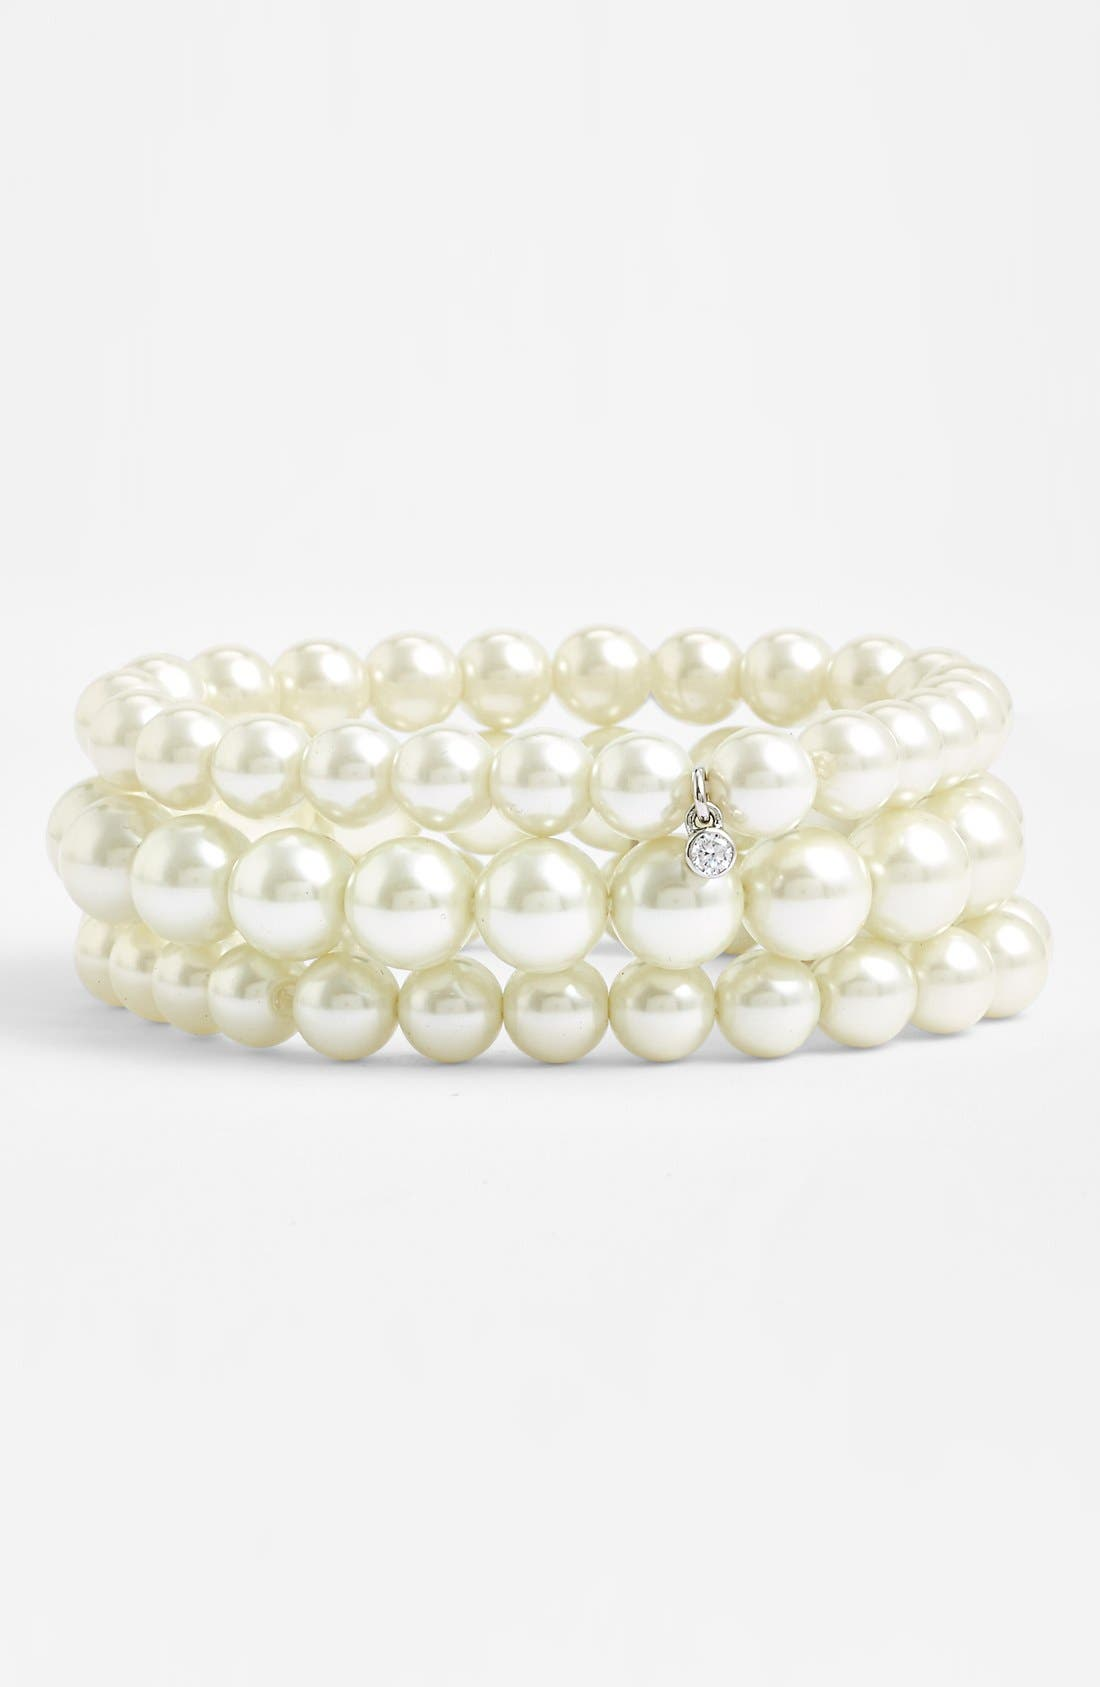 Main Image - Givenchy Glass Pearl Stretch Bracelets (Set of 3)